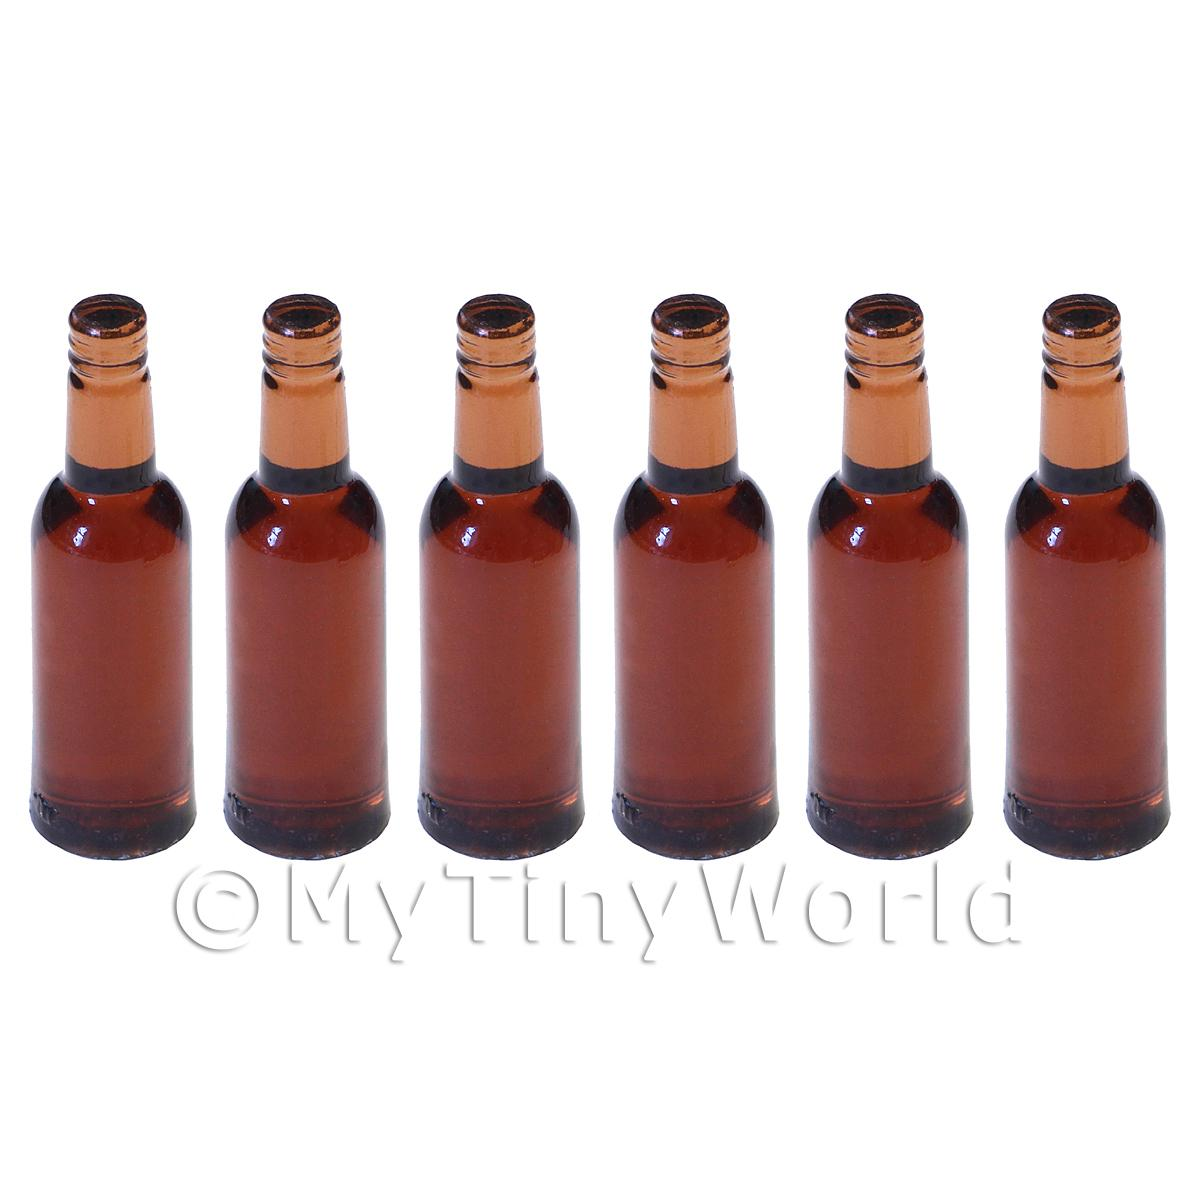 Dolls House Miniature  | Set of 6 Brown Dolls House Miniature Resin Drinks Bottles